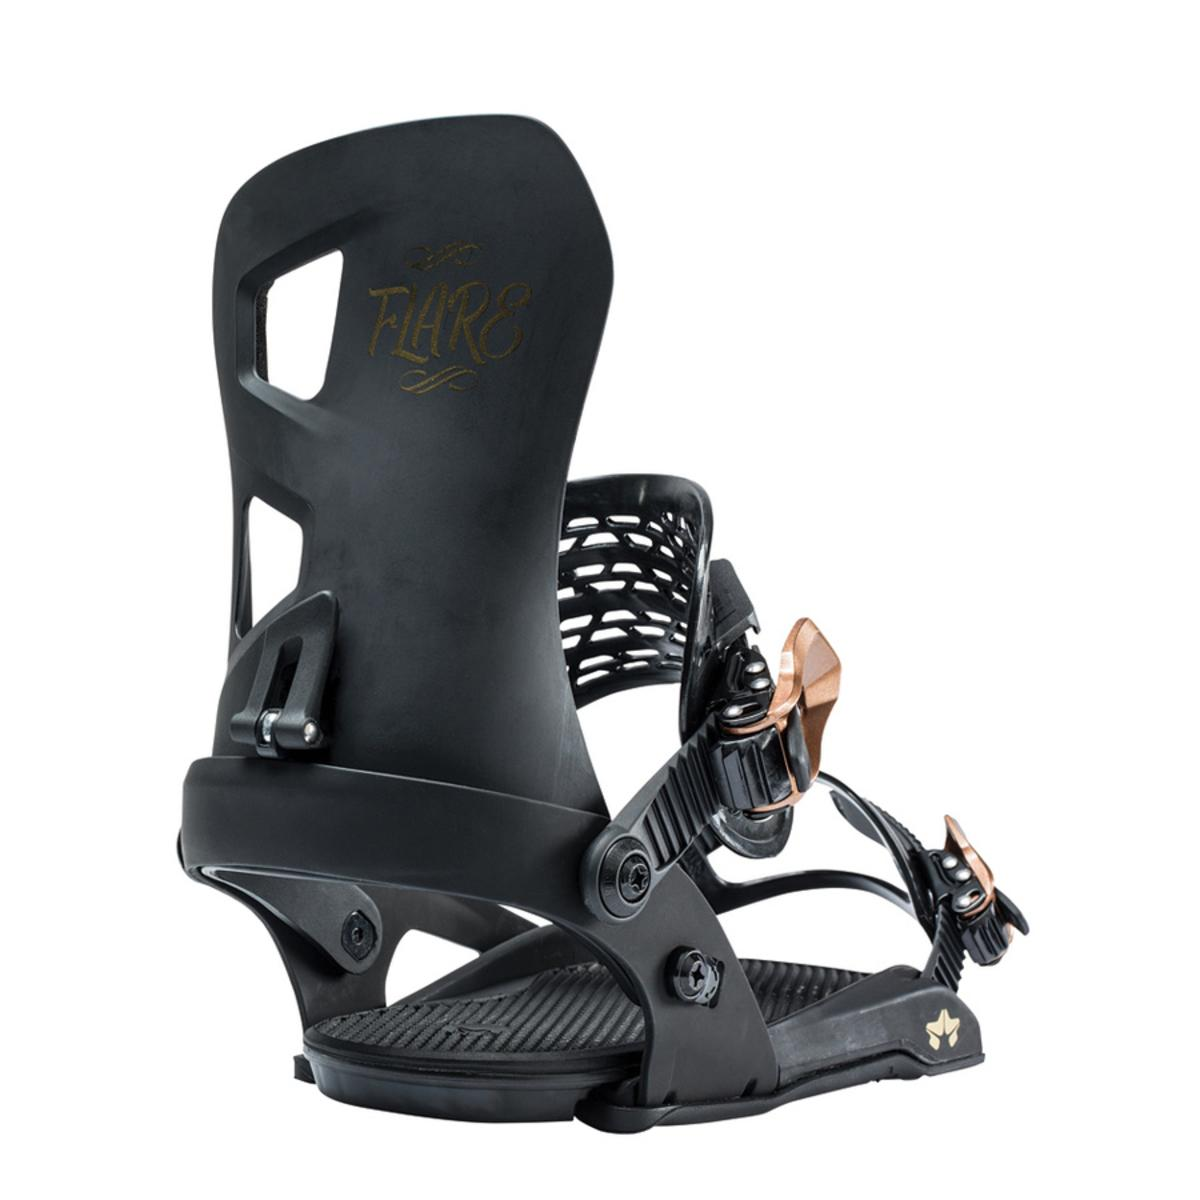 Rome Flare 2019 Women's Snowboard Bindings